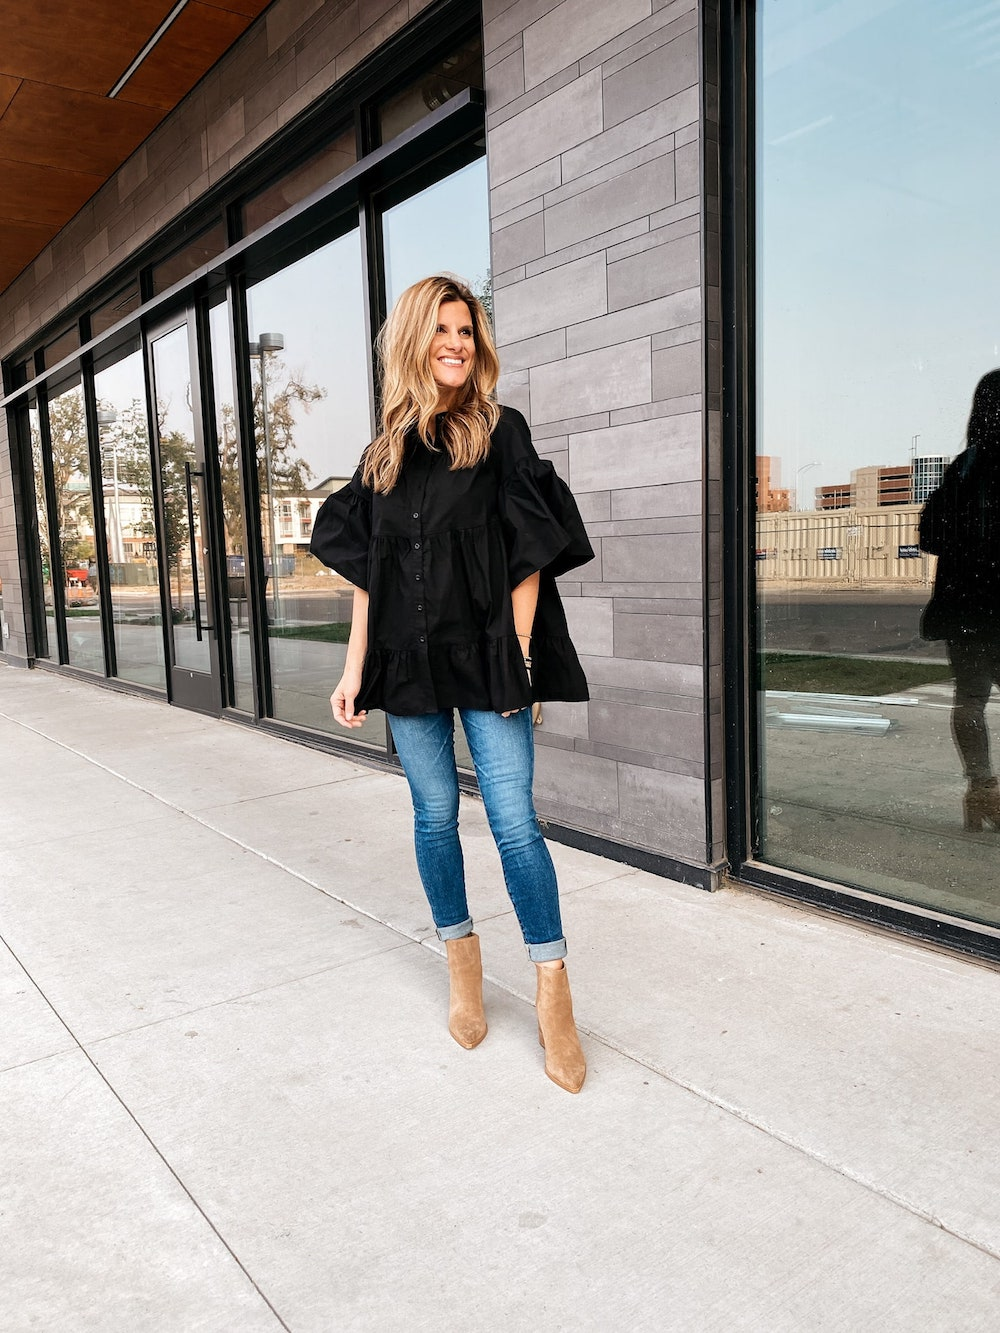 Black TopShop Blouse Nordstrom, brighton butler pregnancy outfit with oversized black shirt skinny jeans and booties, fall outfit